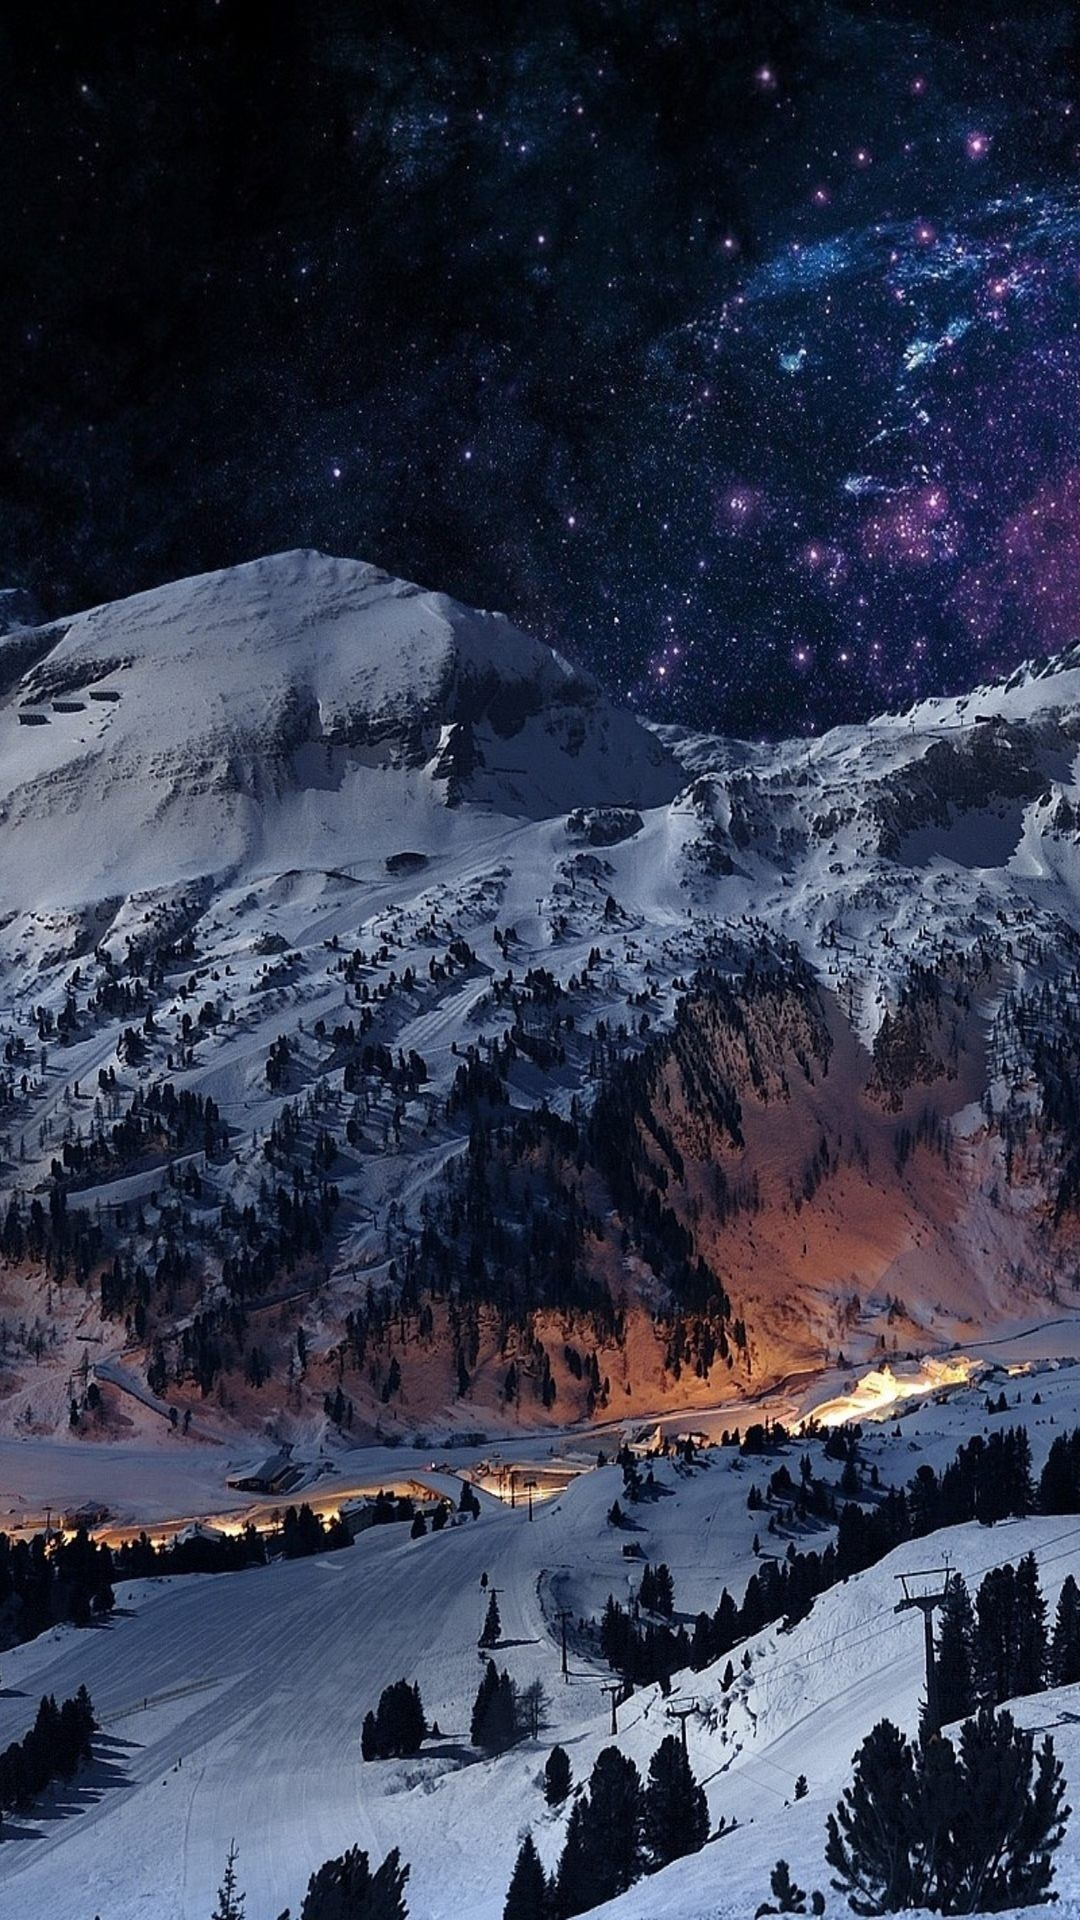 Winter Wallpaper For Iphone 6 Plus Find best latest Winter Wallpaper For  Iphone 6 Plus for